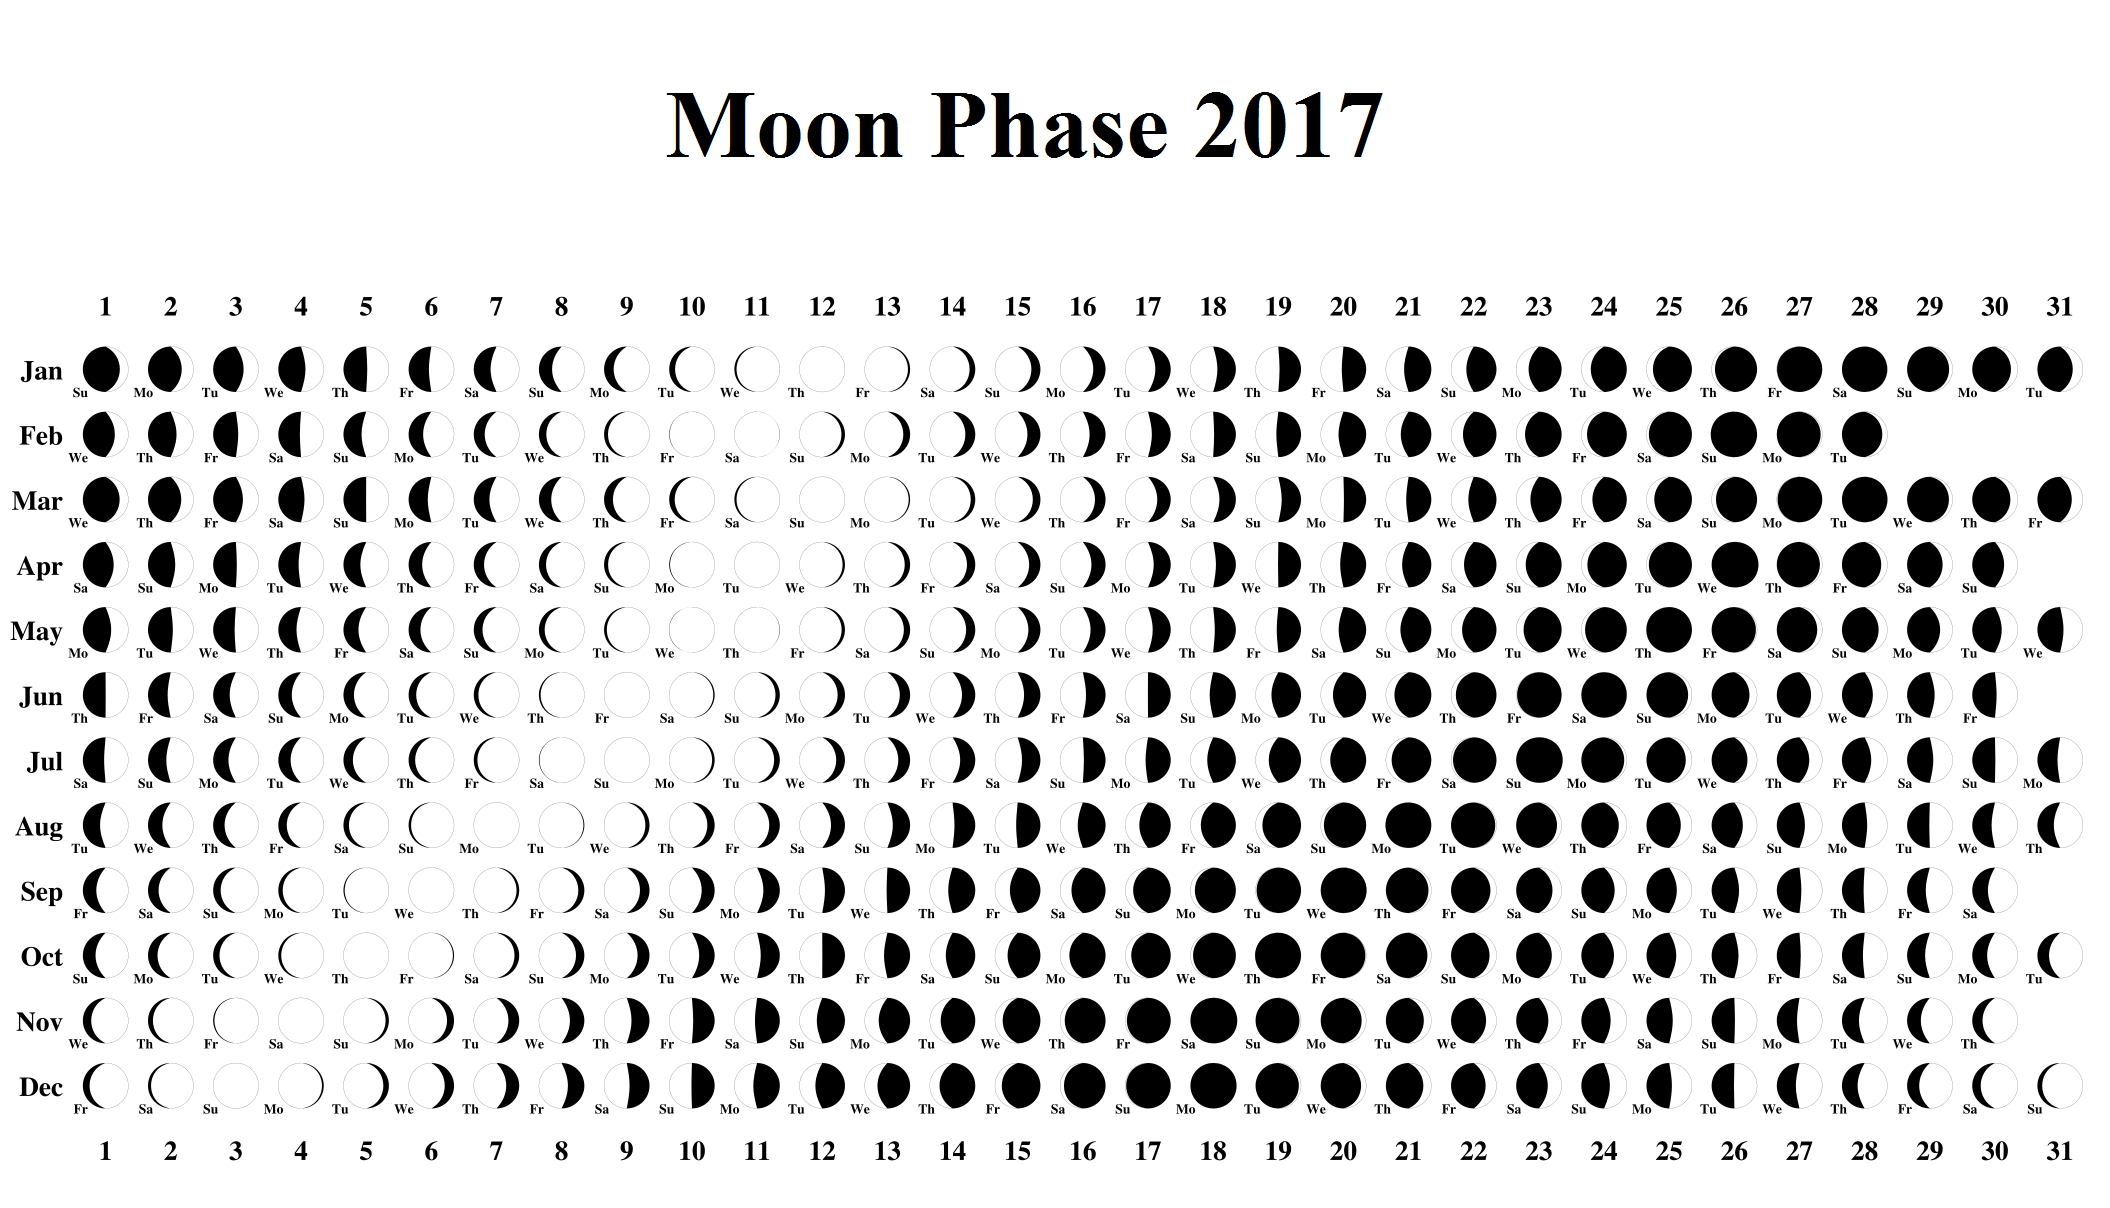 Moon Phase Calendar Lunar Template 2017 Moon Phase Calendar 2017